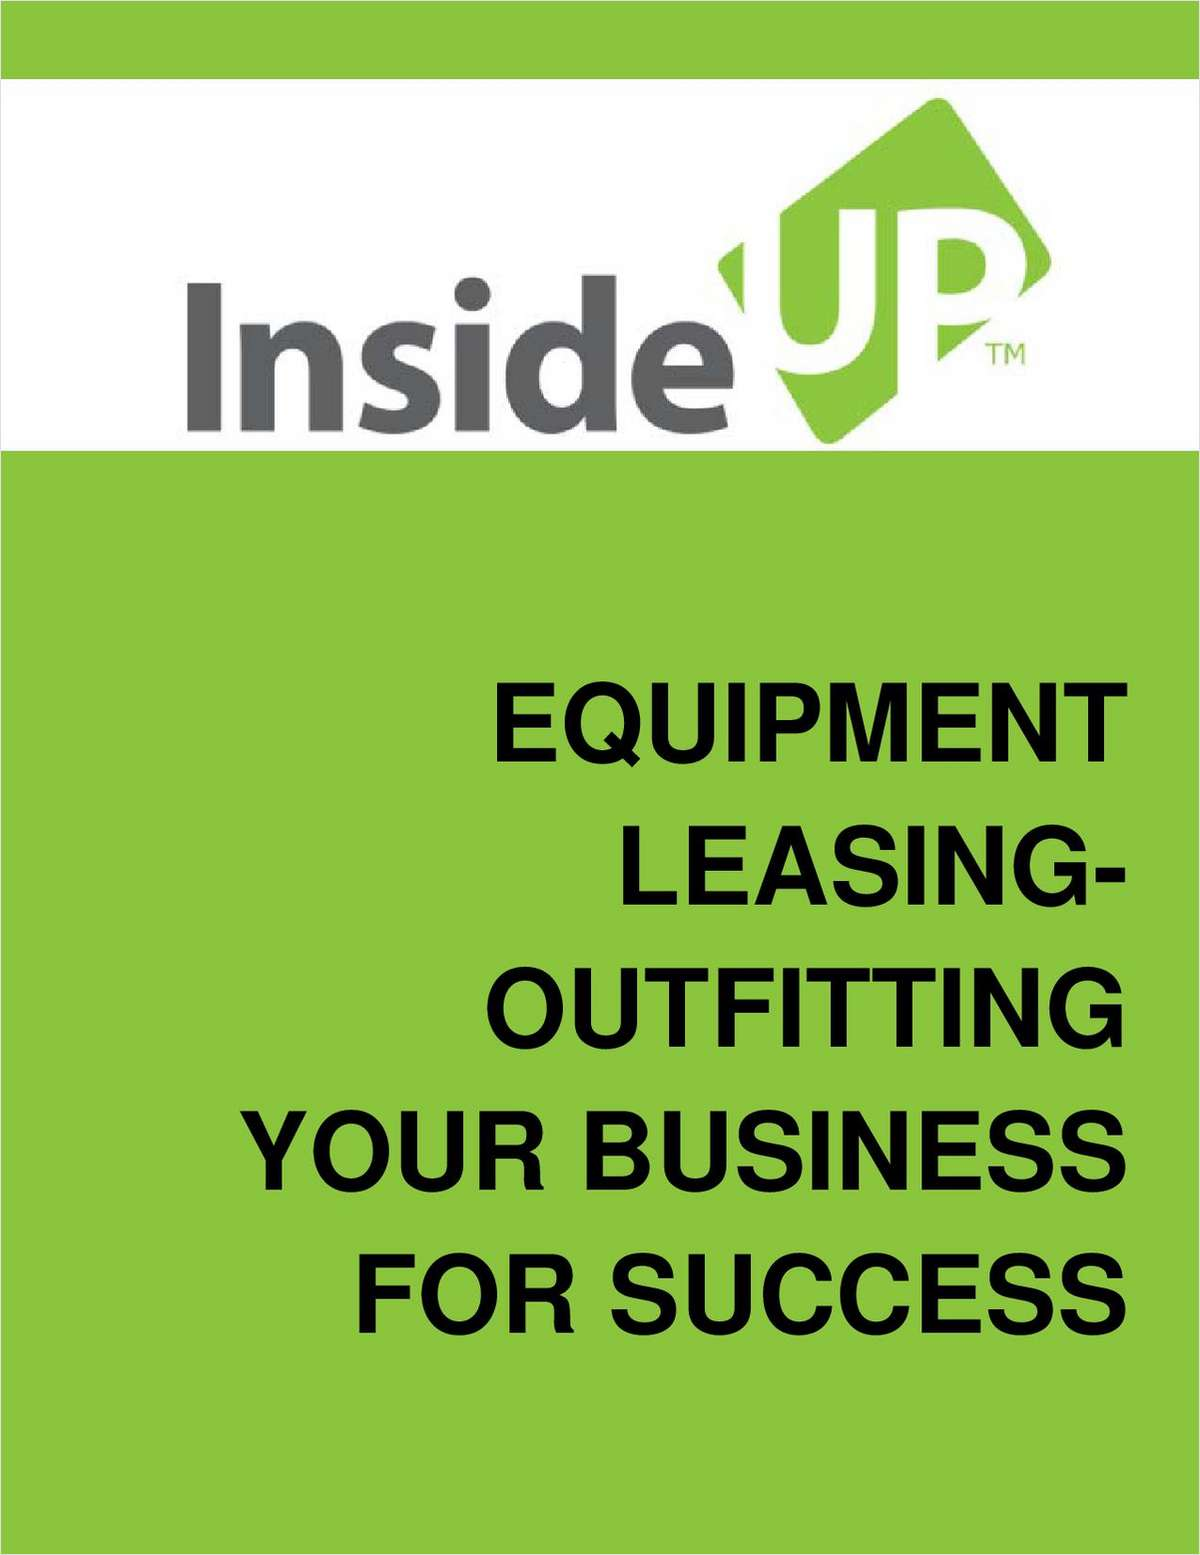 Key Benefits of Leasing Equipment for Your Business